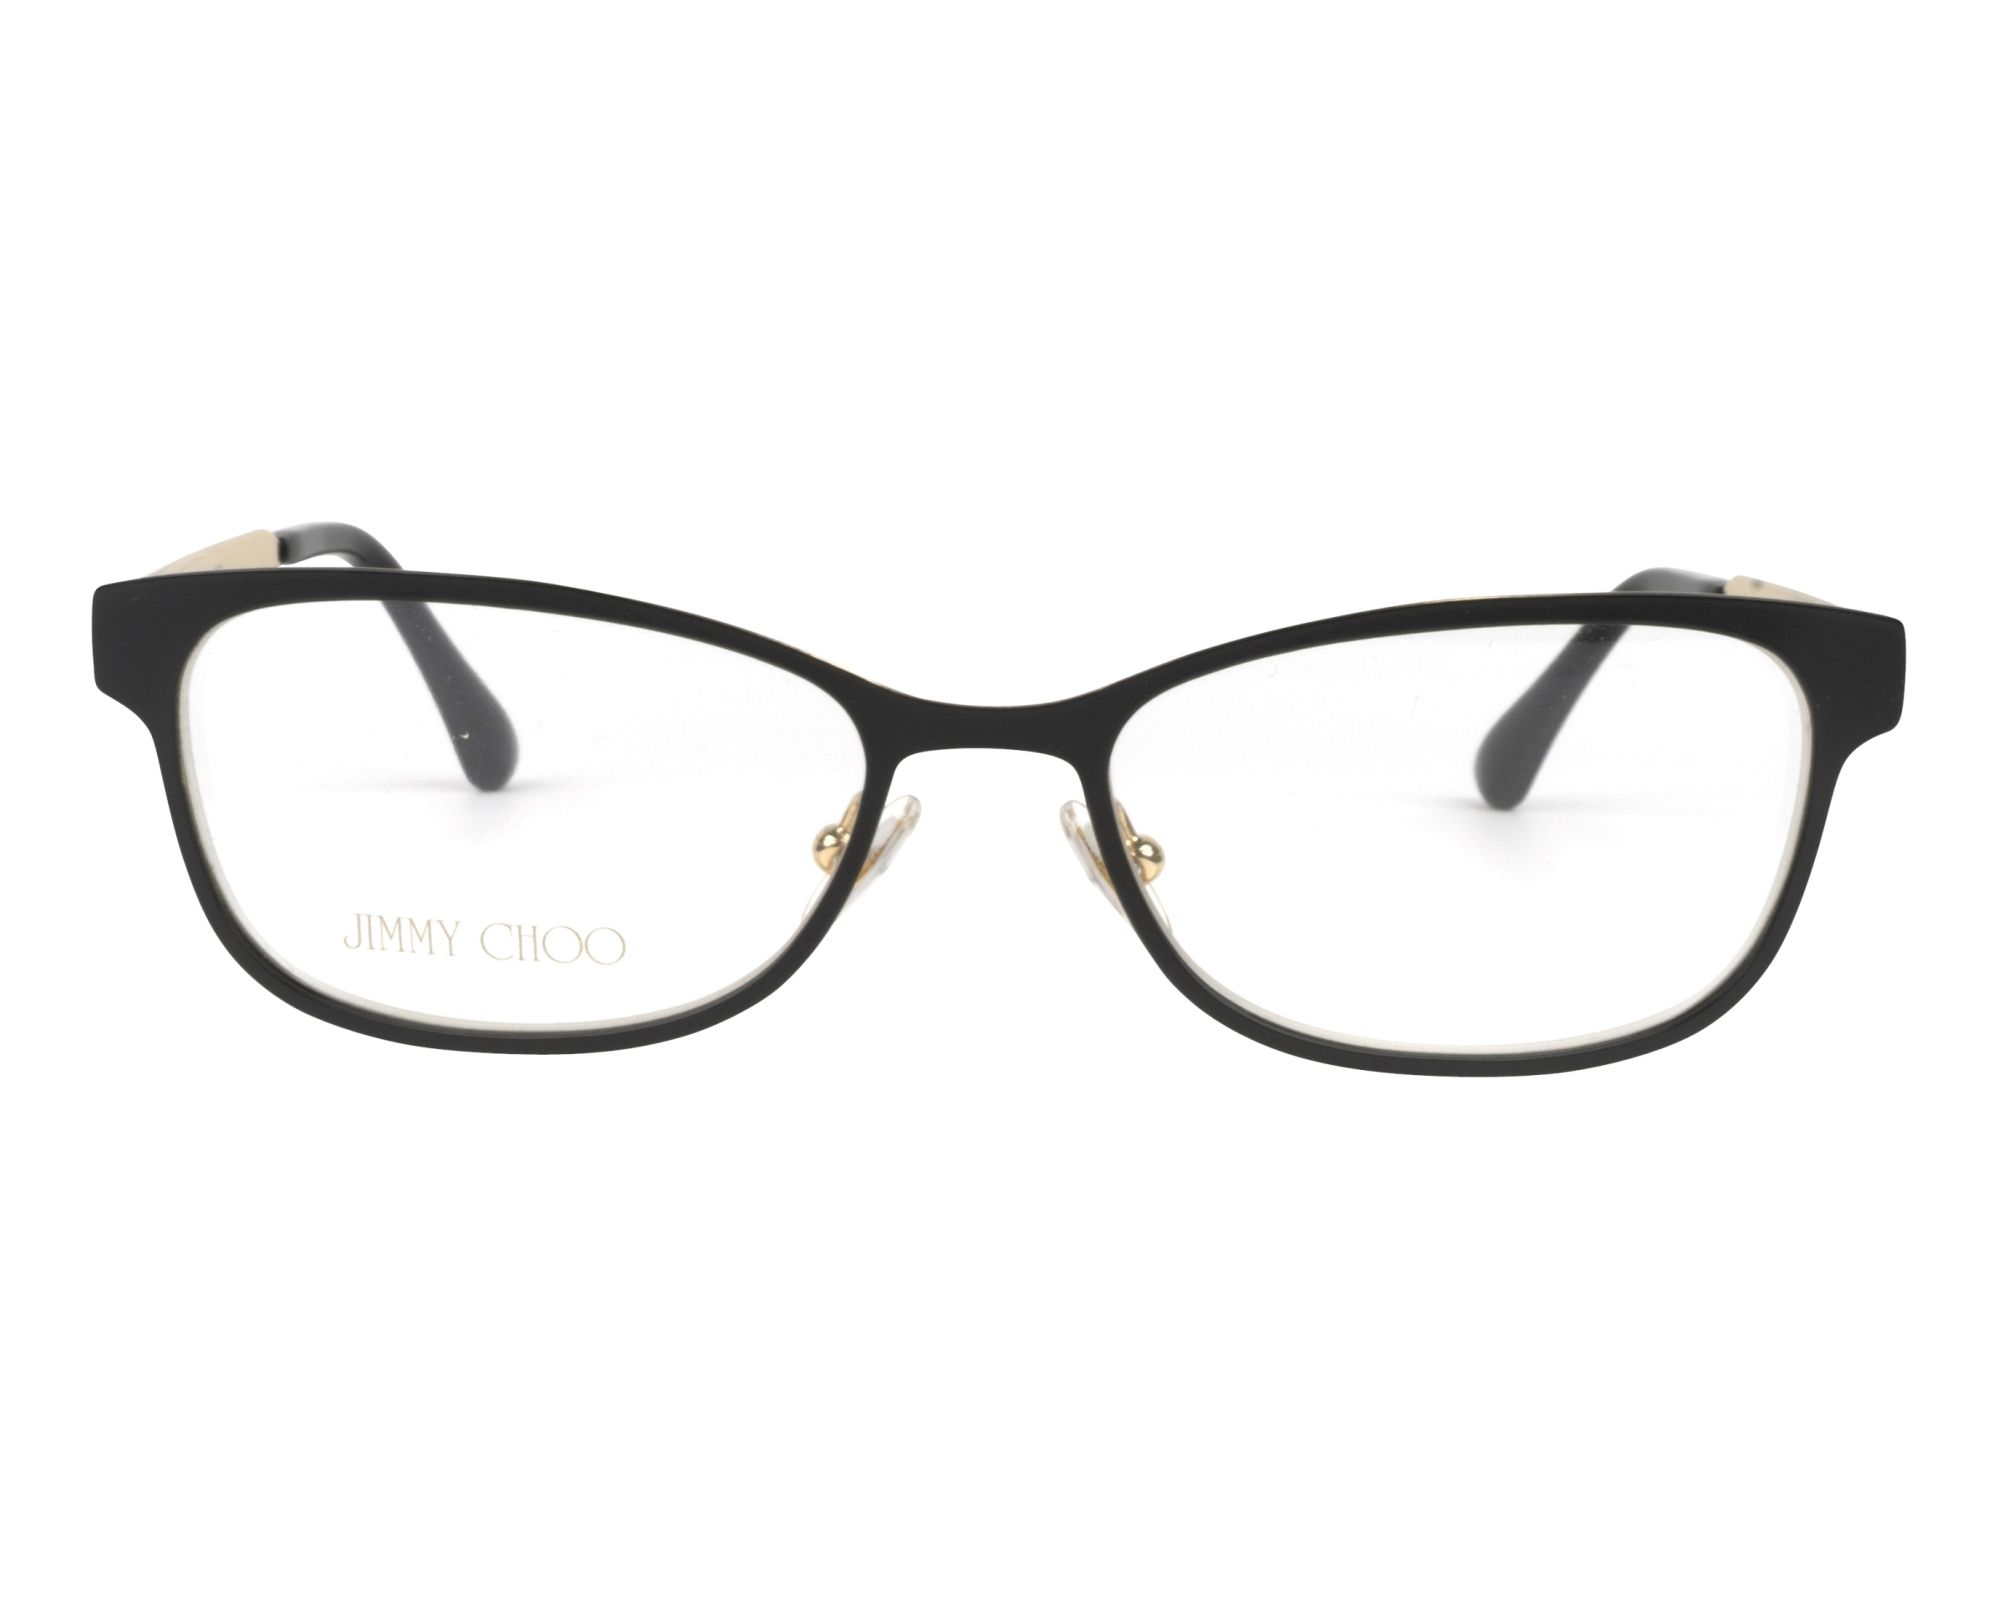 18e40f39e00 eyeglasses Jimmy Choo JC-203 003 - Black Gold front view